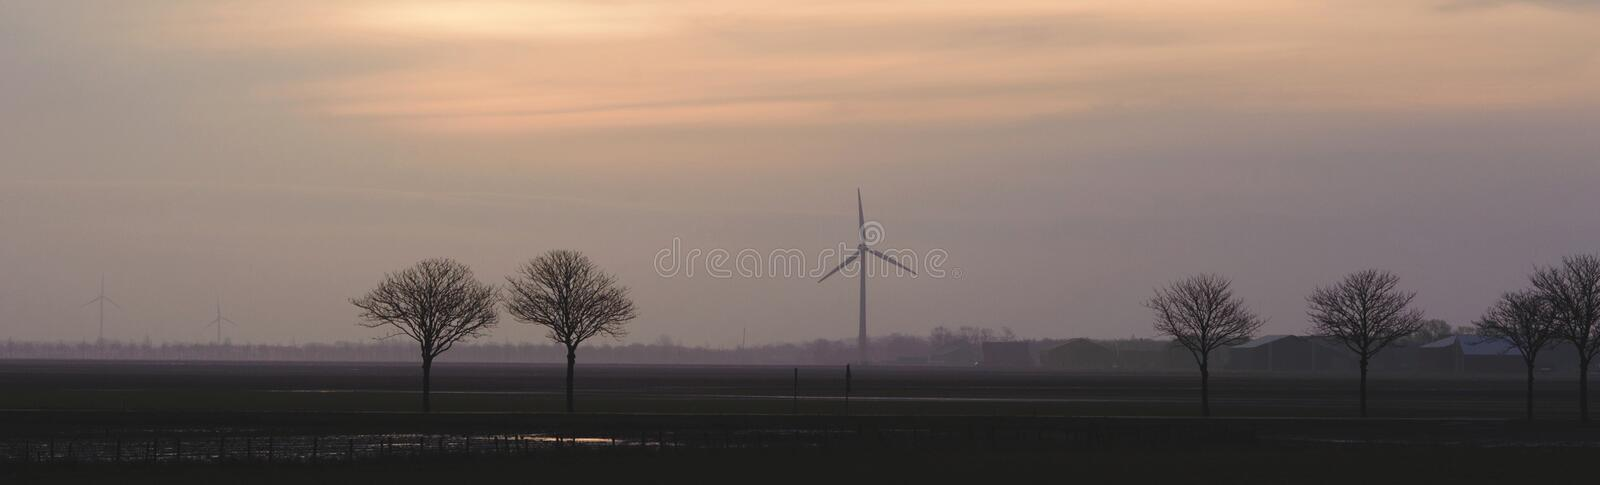 Field with trees and windmills on the horizon in the evening. Typical dutch landscape. stock photos